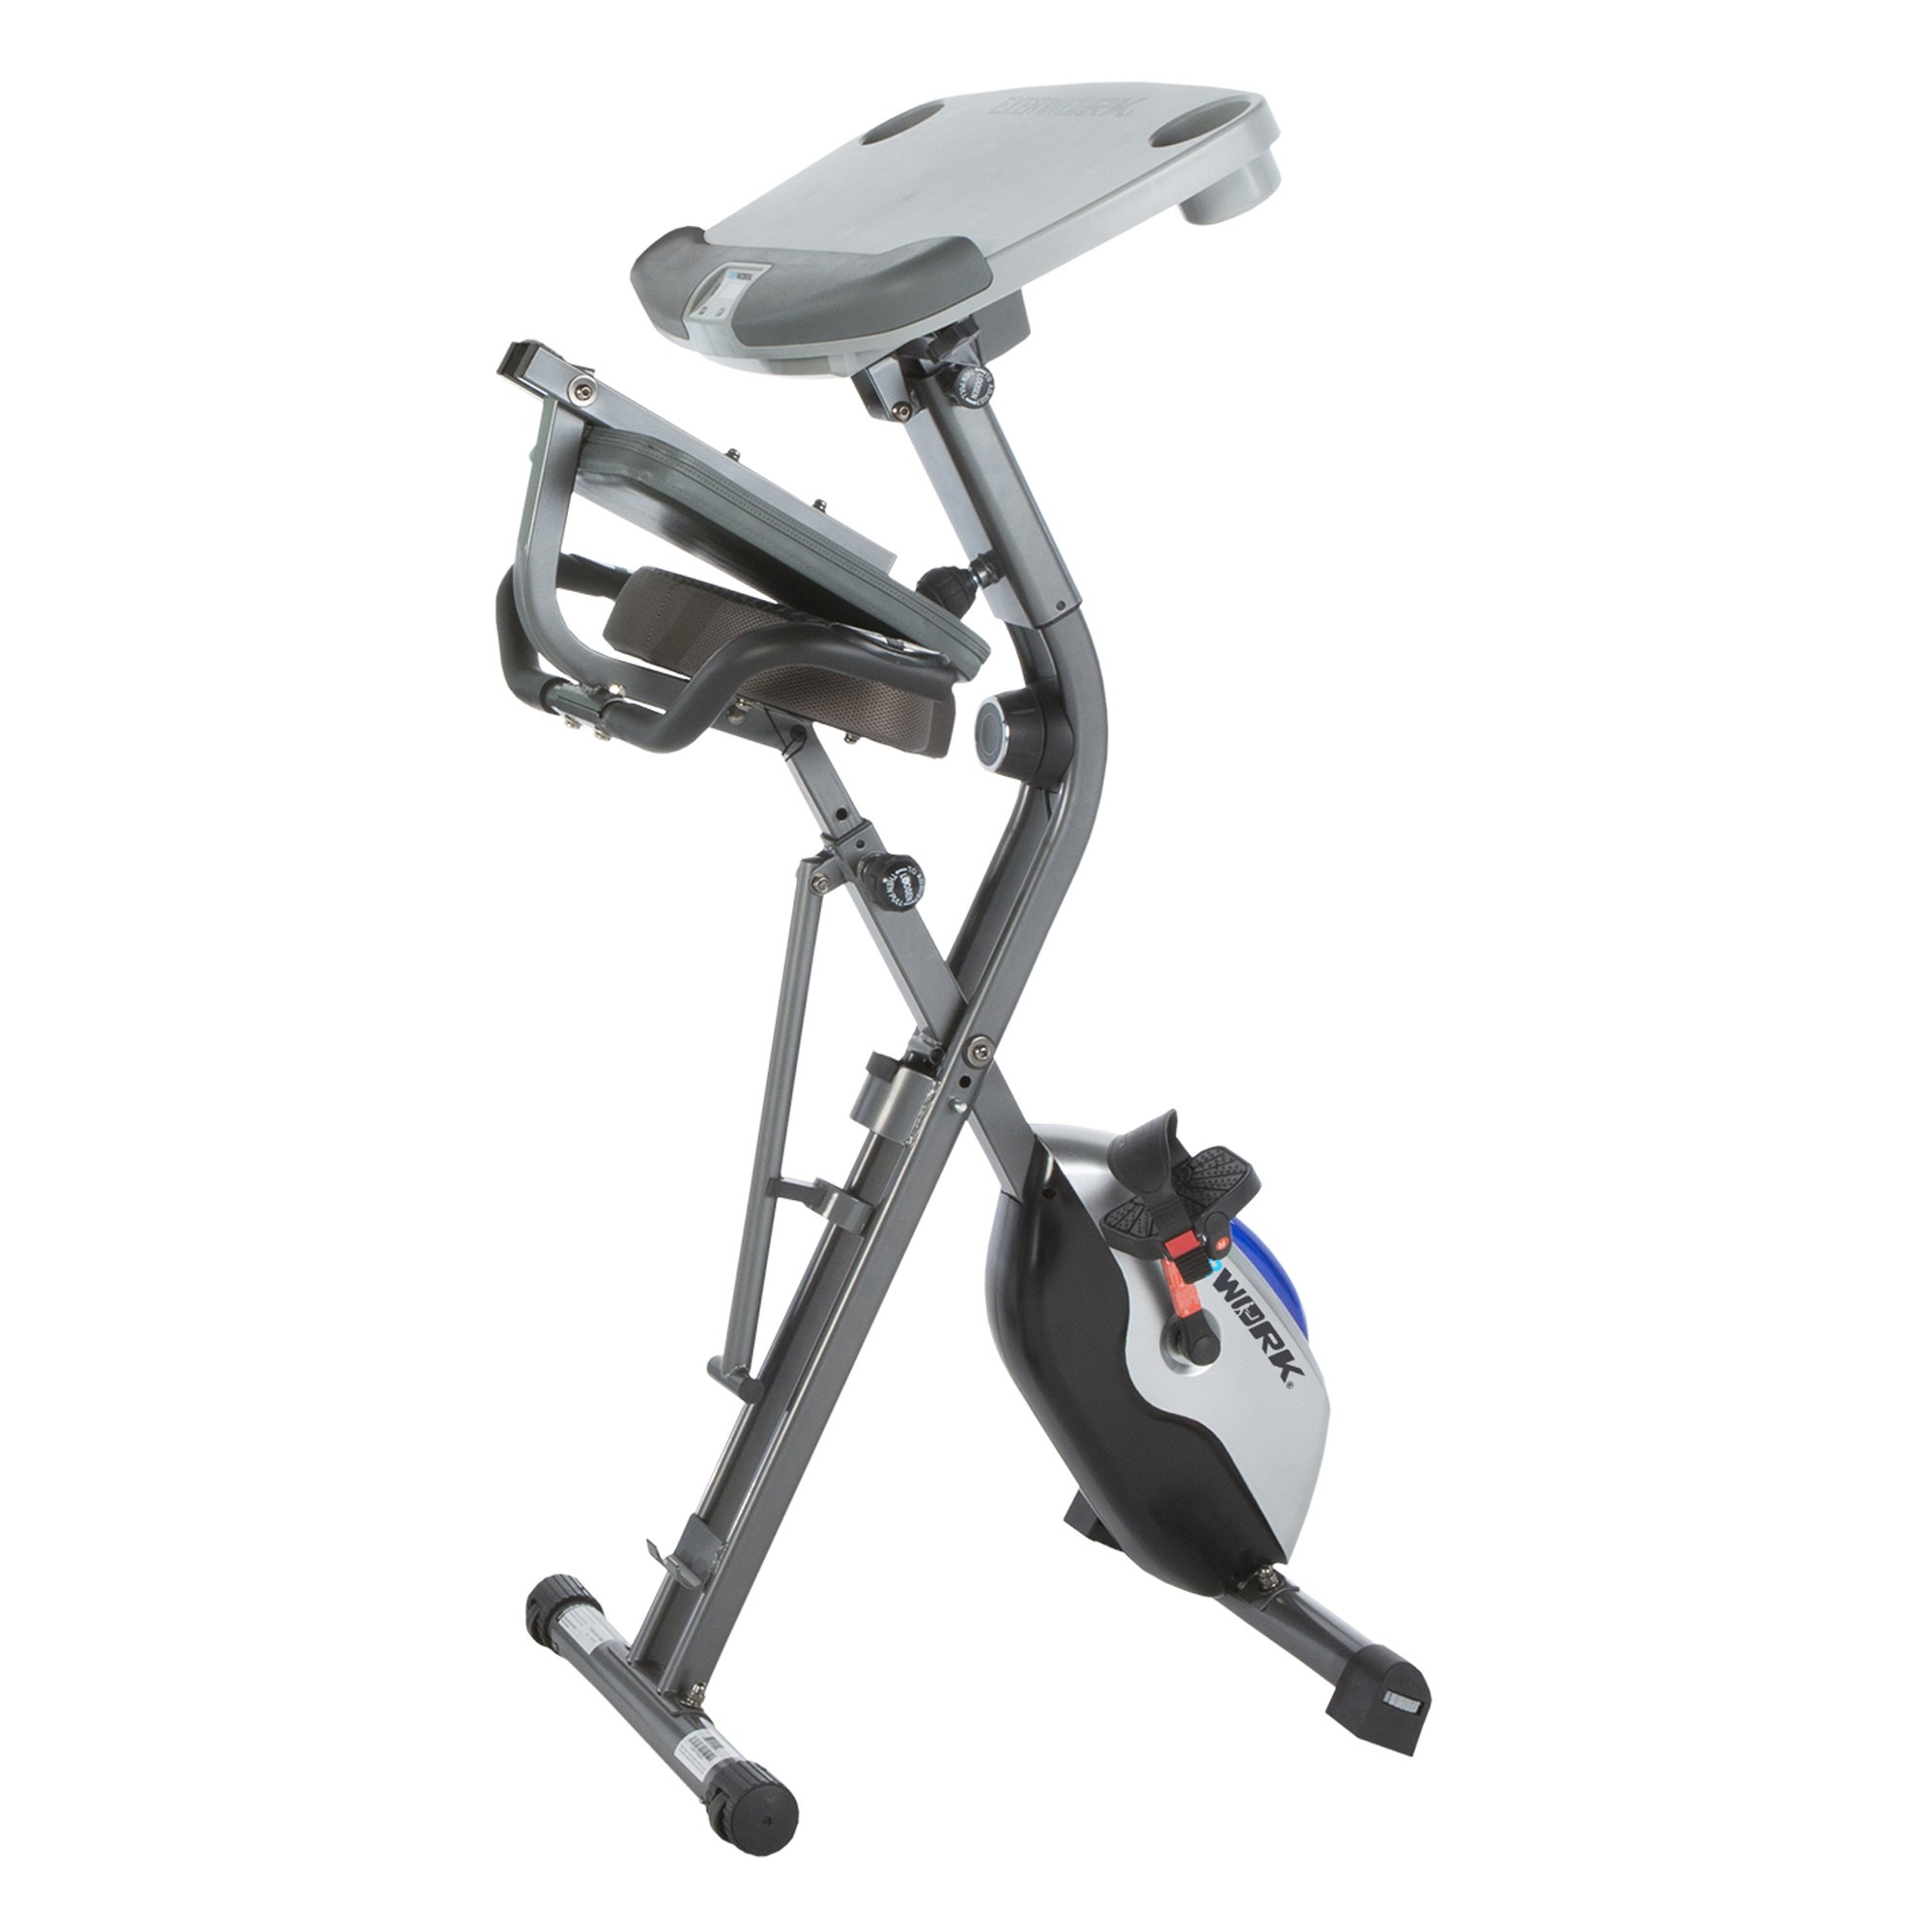 Exerpeutic ExerWorK 1000 Fully Adjustable Desk Folding Exercise Bike with Pulse by Exerpeutic (Image #3)